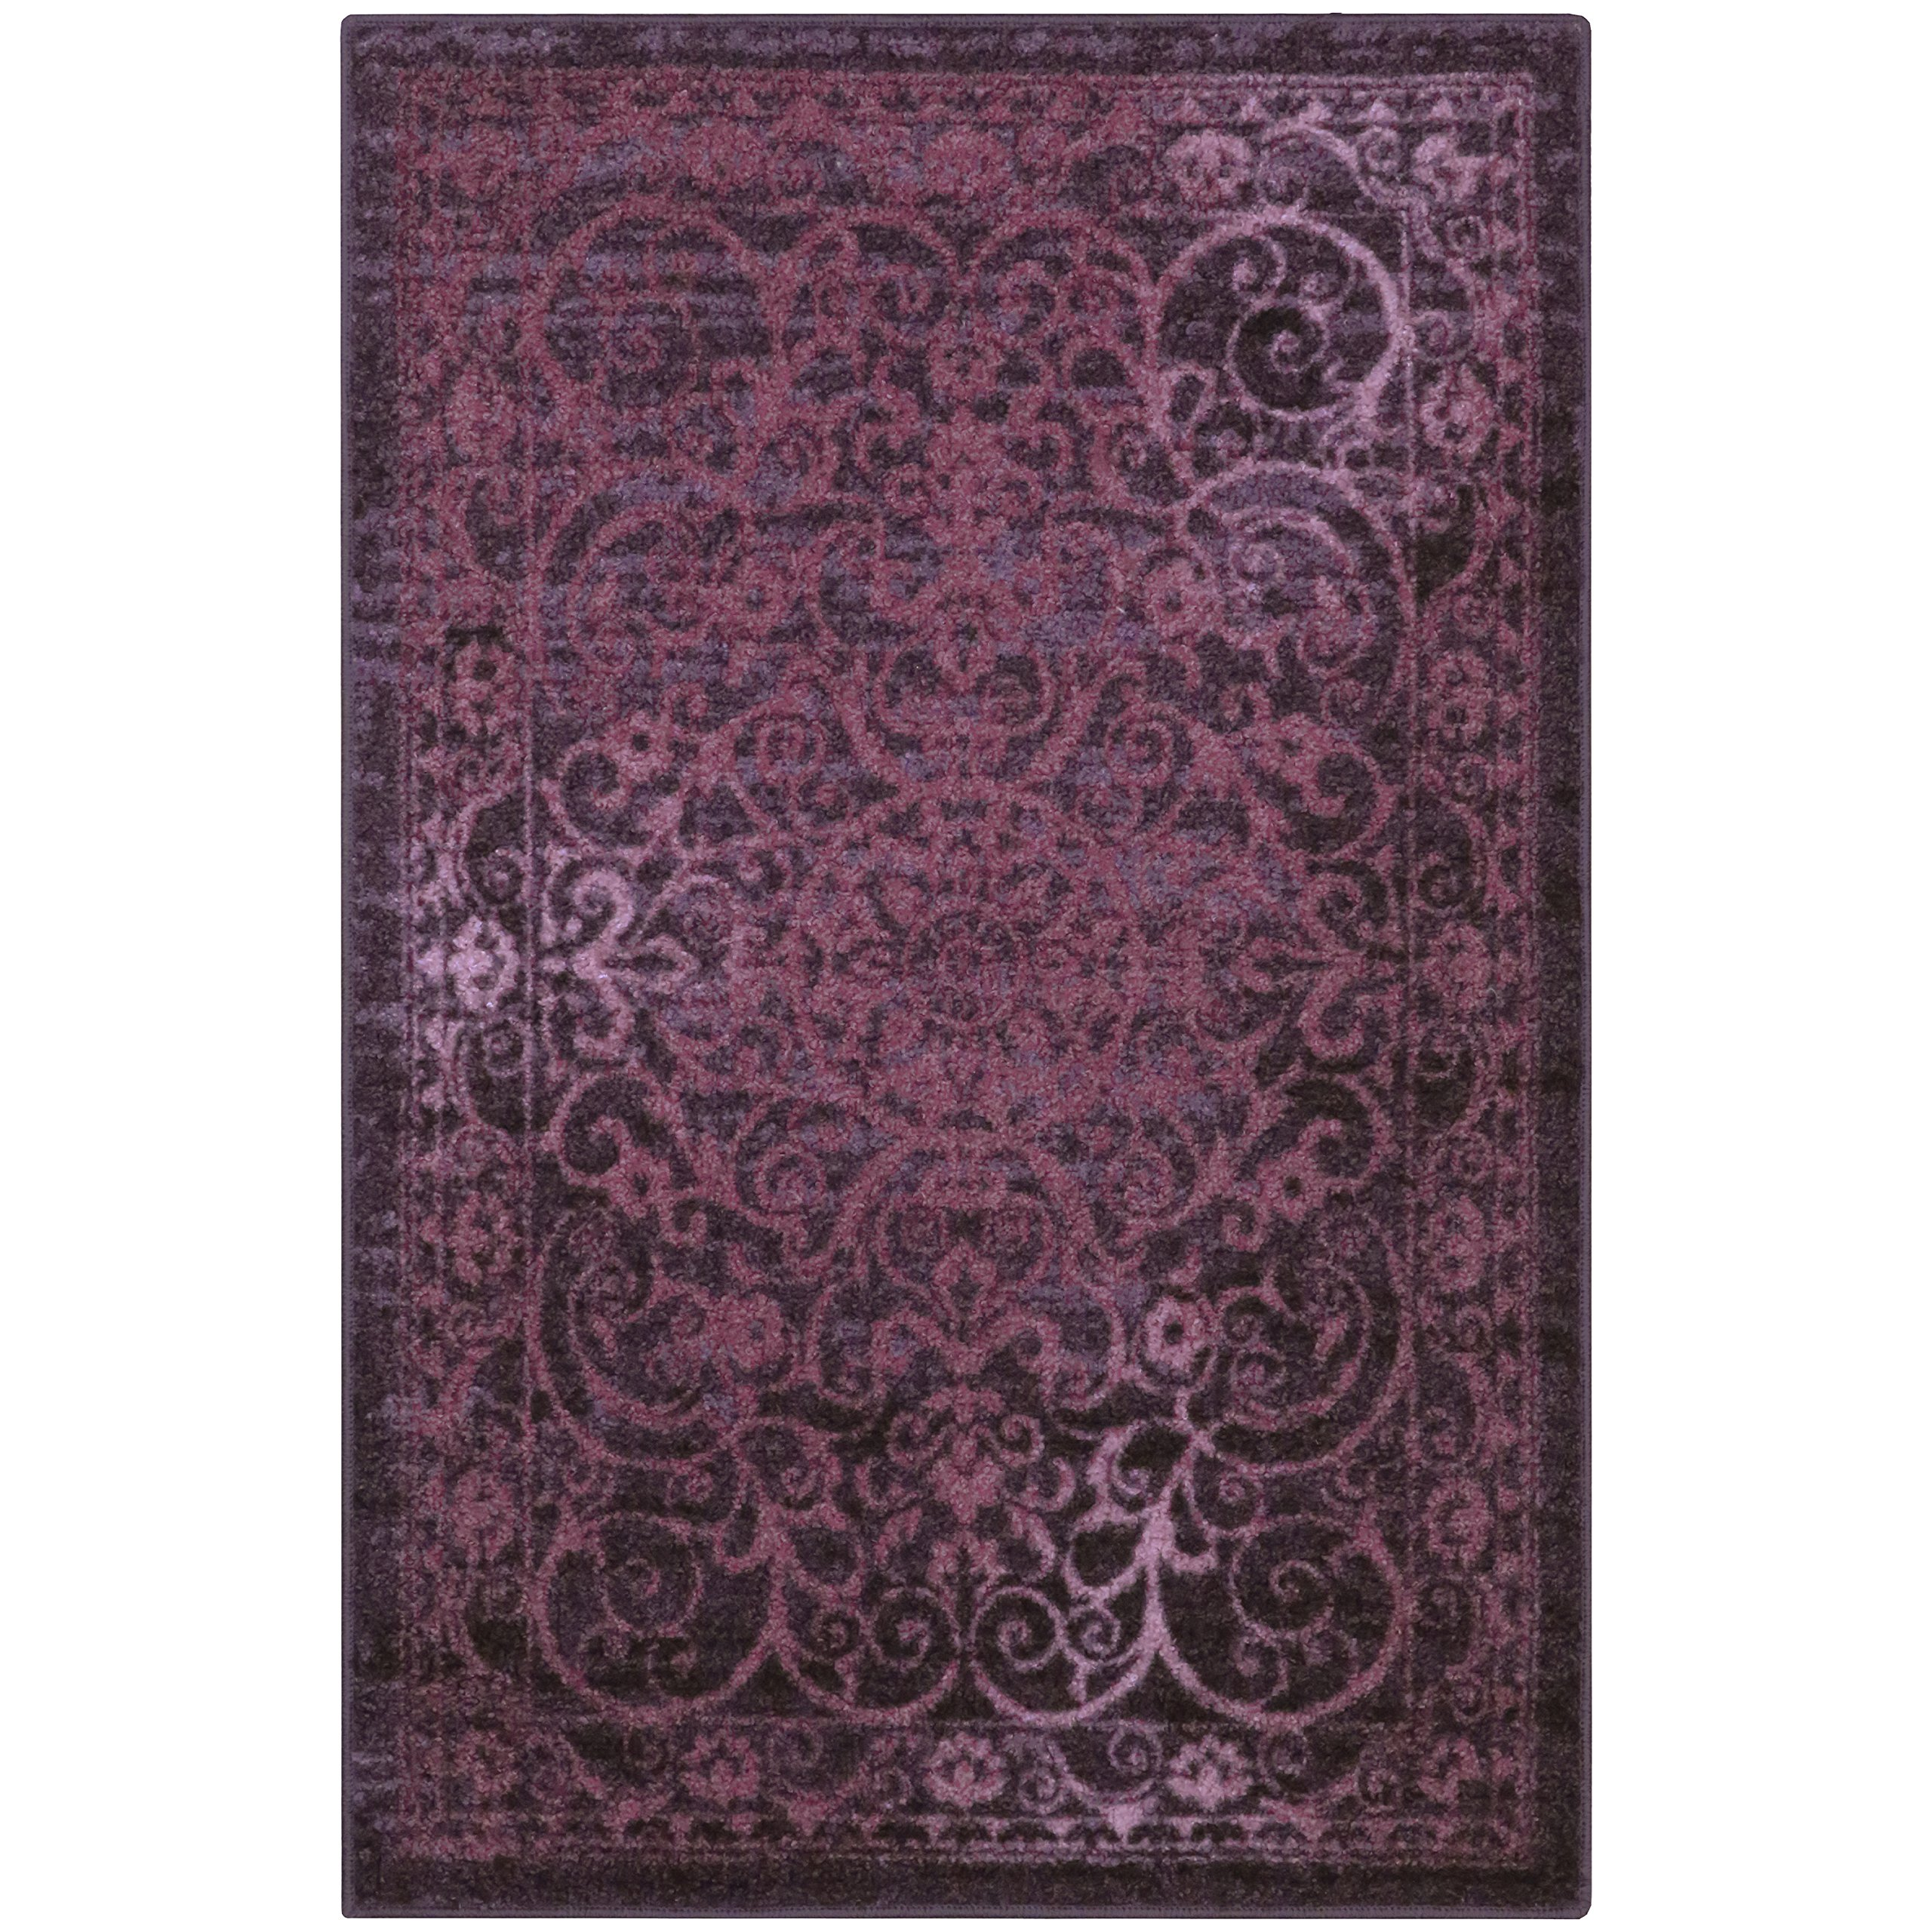 Area Rugs, Maples Rugs [Made in USA][Pelham] 7' x 10' Non Slip Padded Large Rug for Living Room, Bedroom, and Dining Room - Wineberry Red